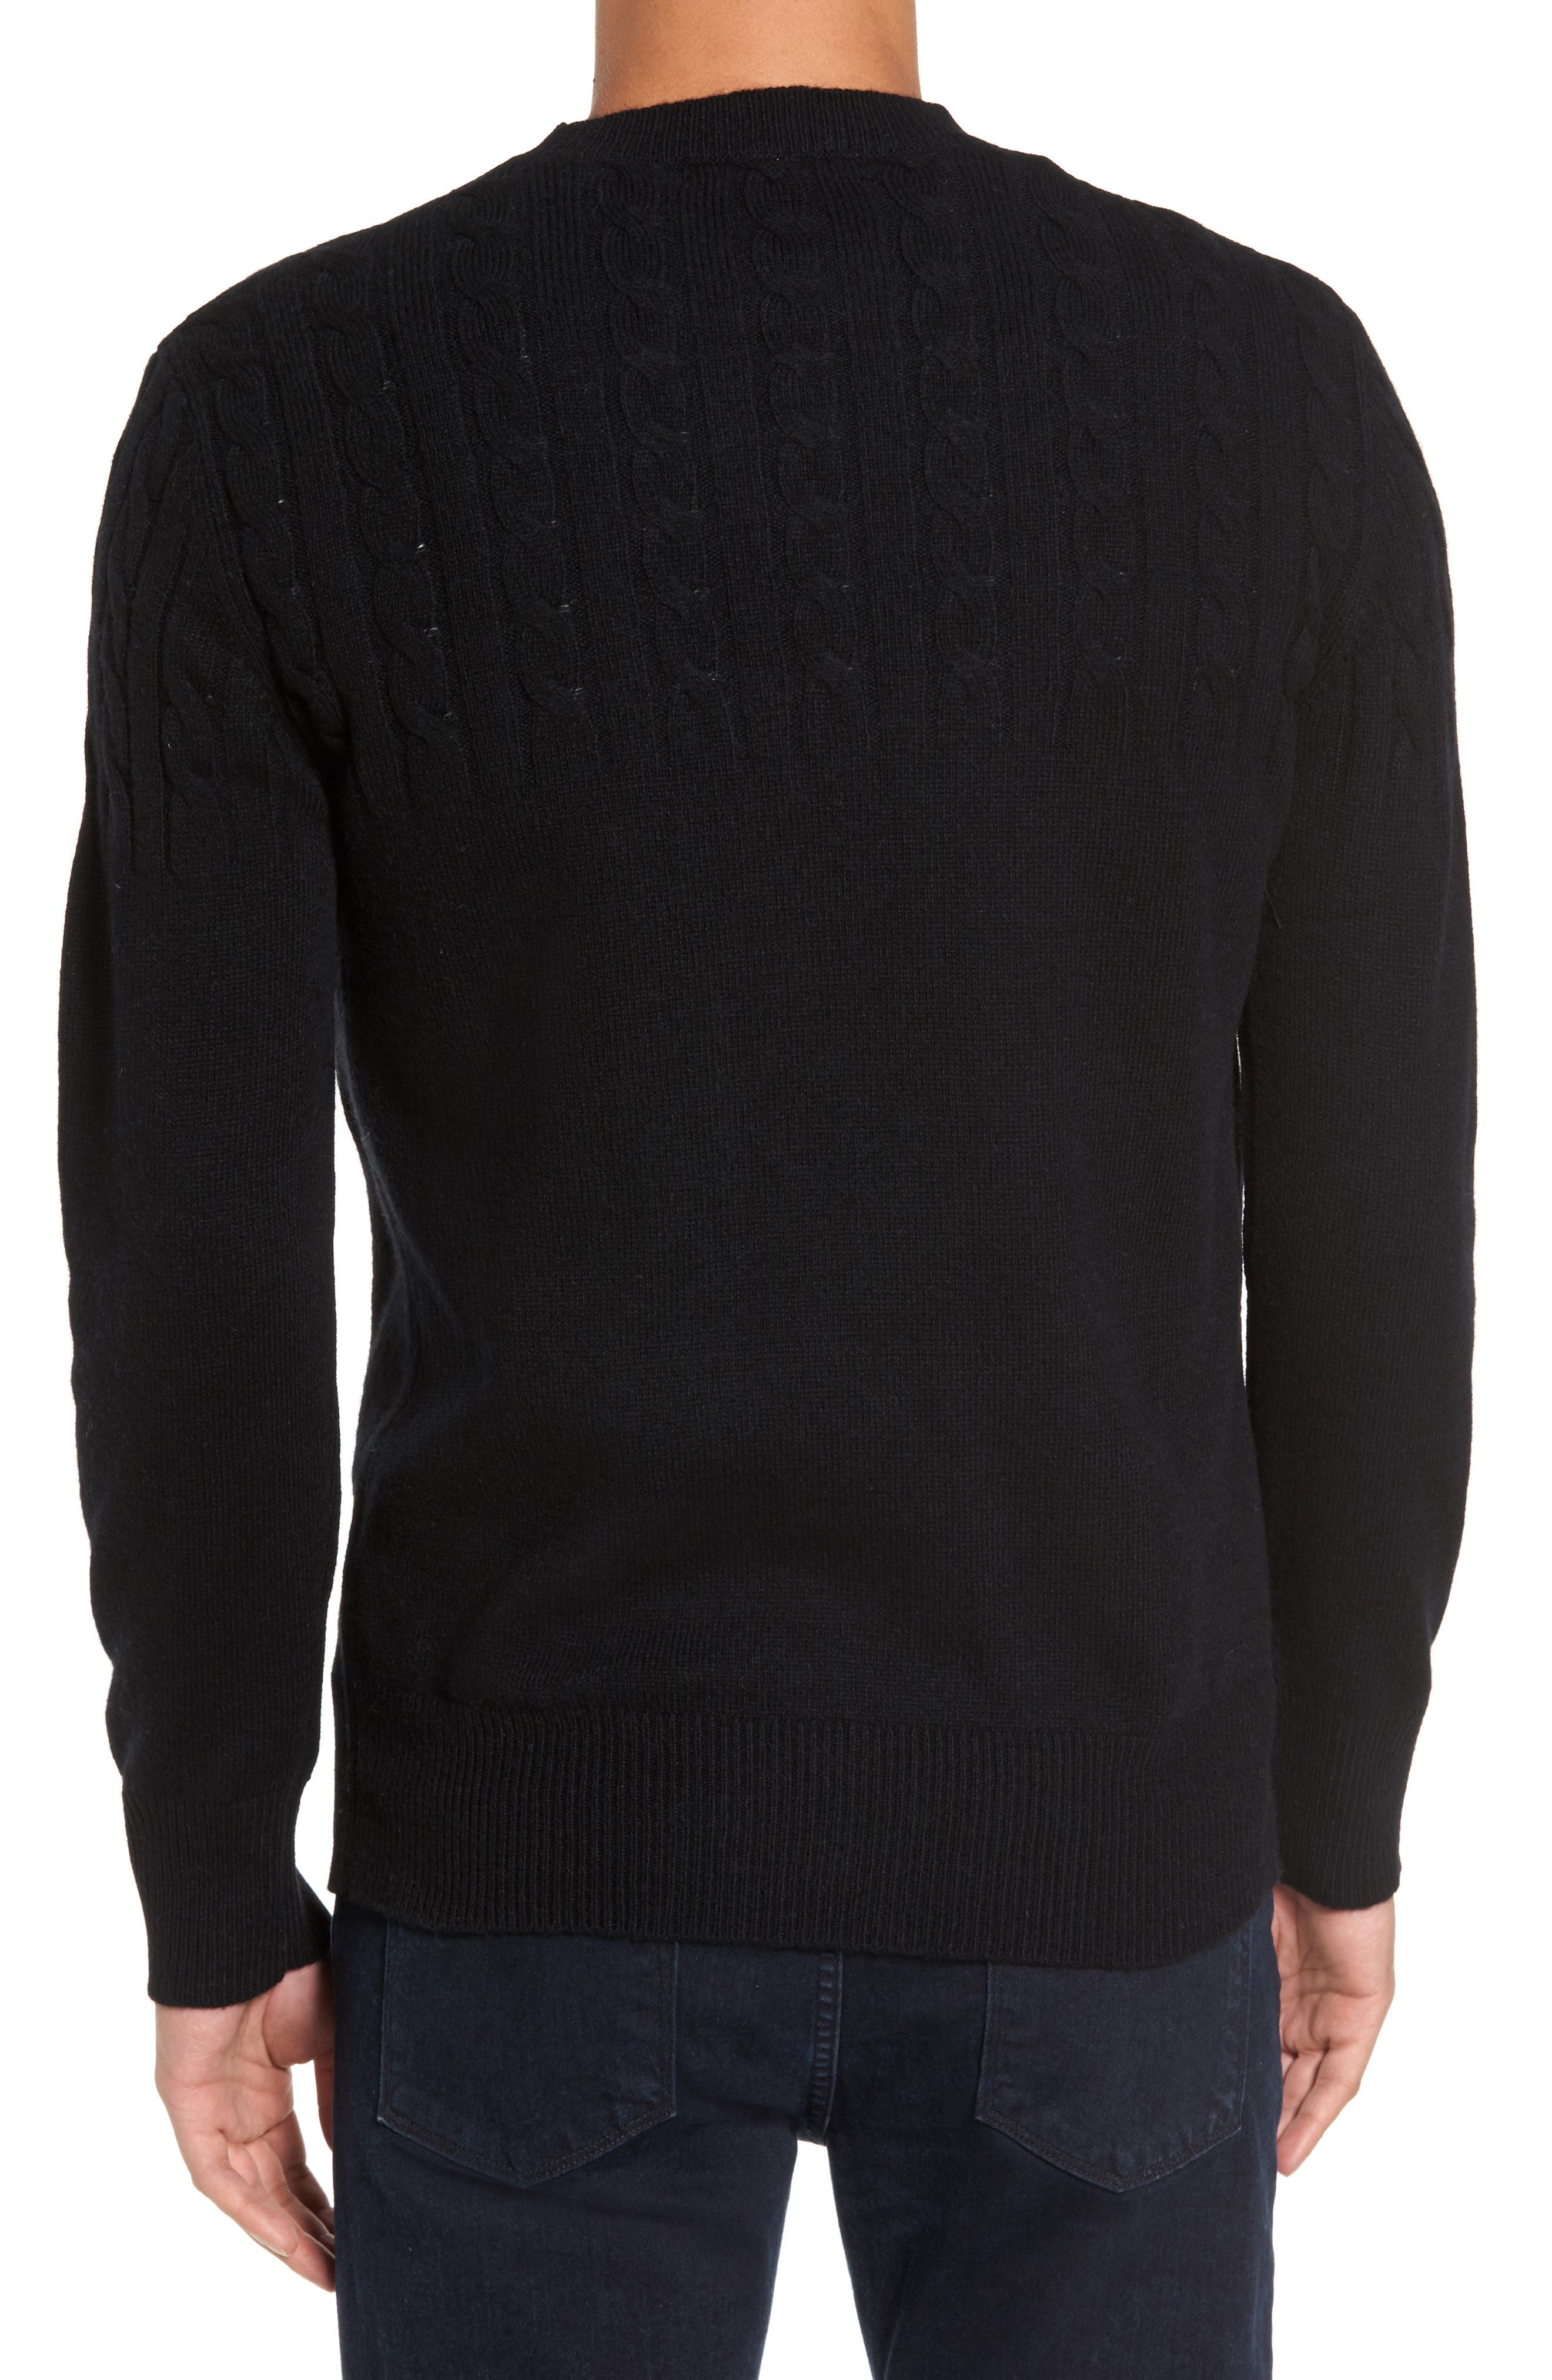 Wool Cable Knit Sweater,                             Alternate thumbnail 2, color,                             001